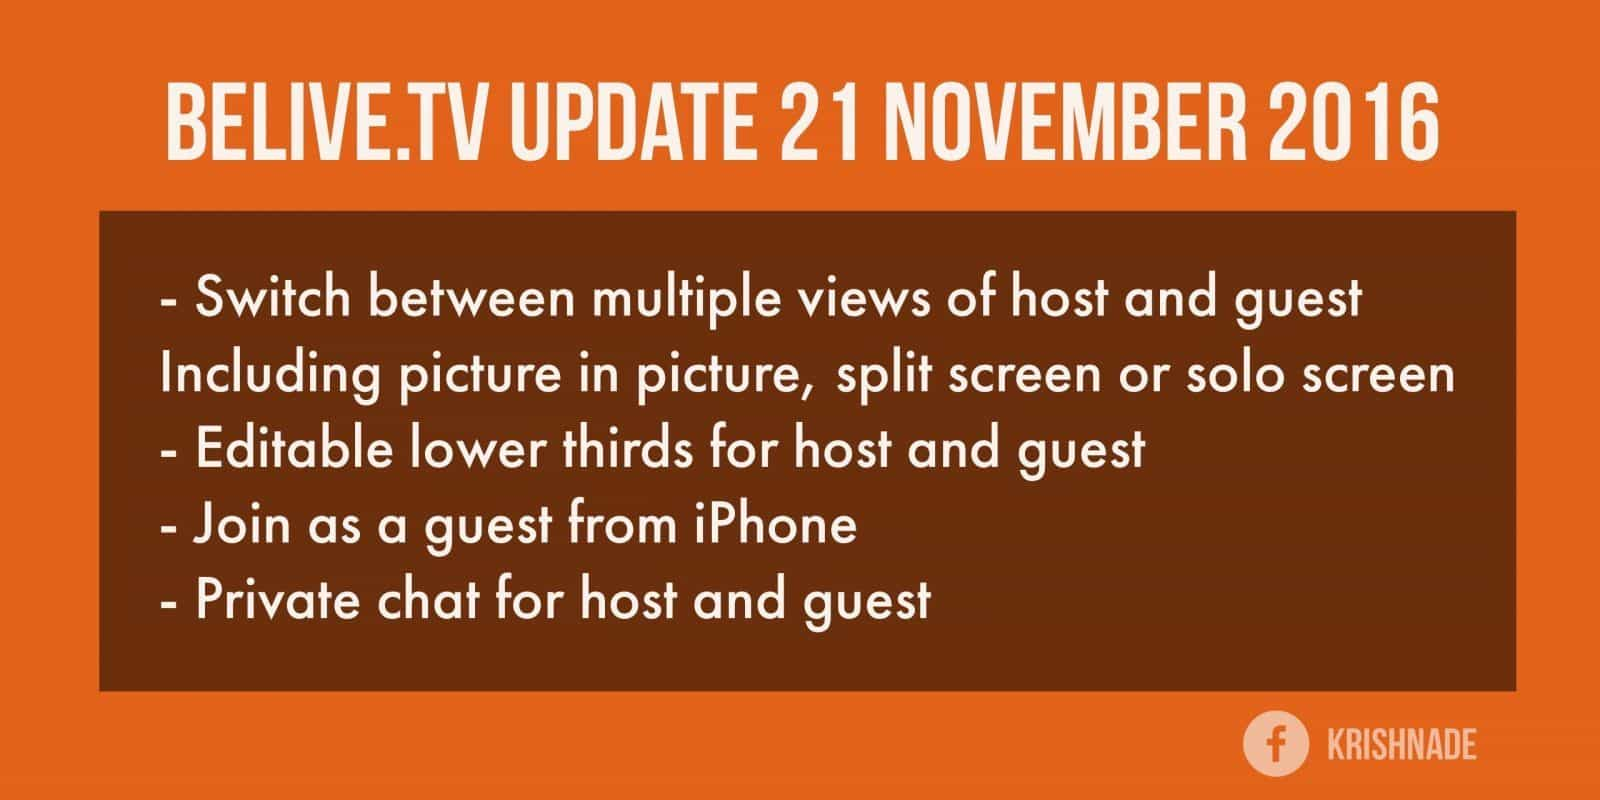 BeLivetv updates their live stream app for two person live streams 21 November 2016